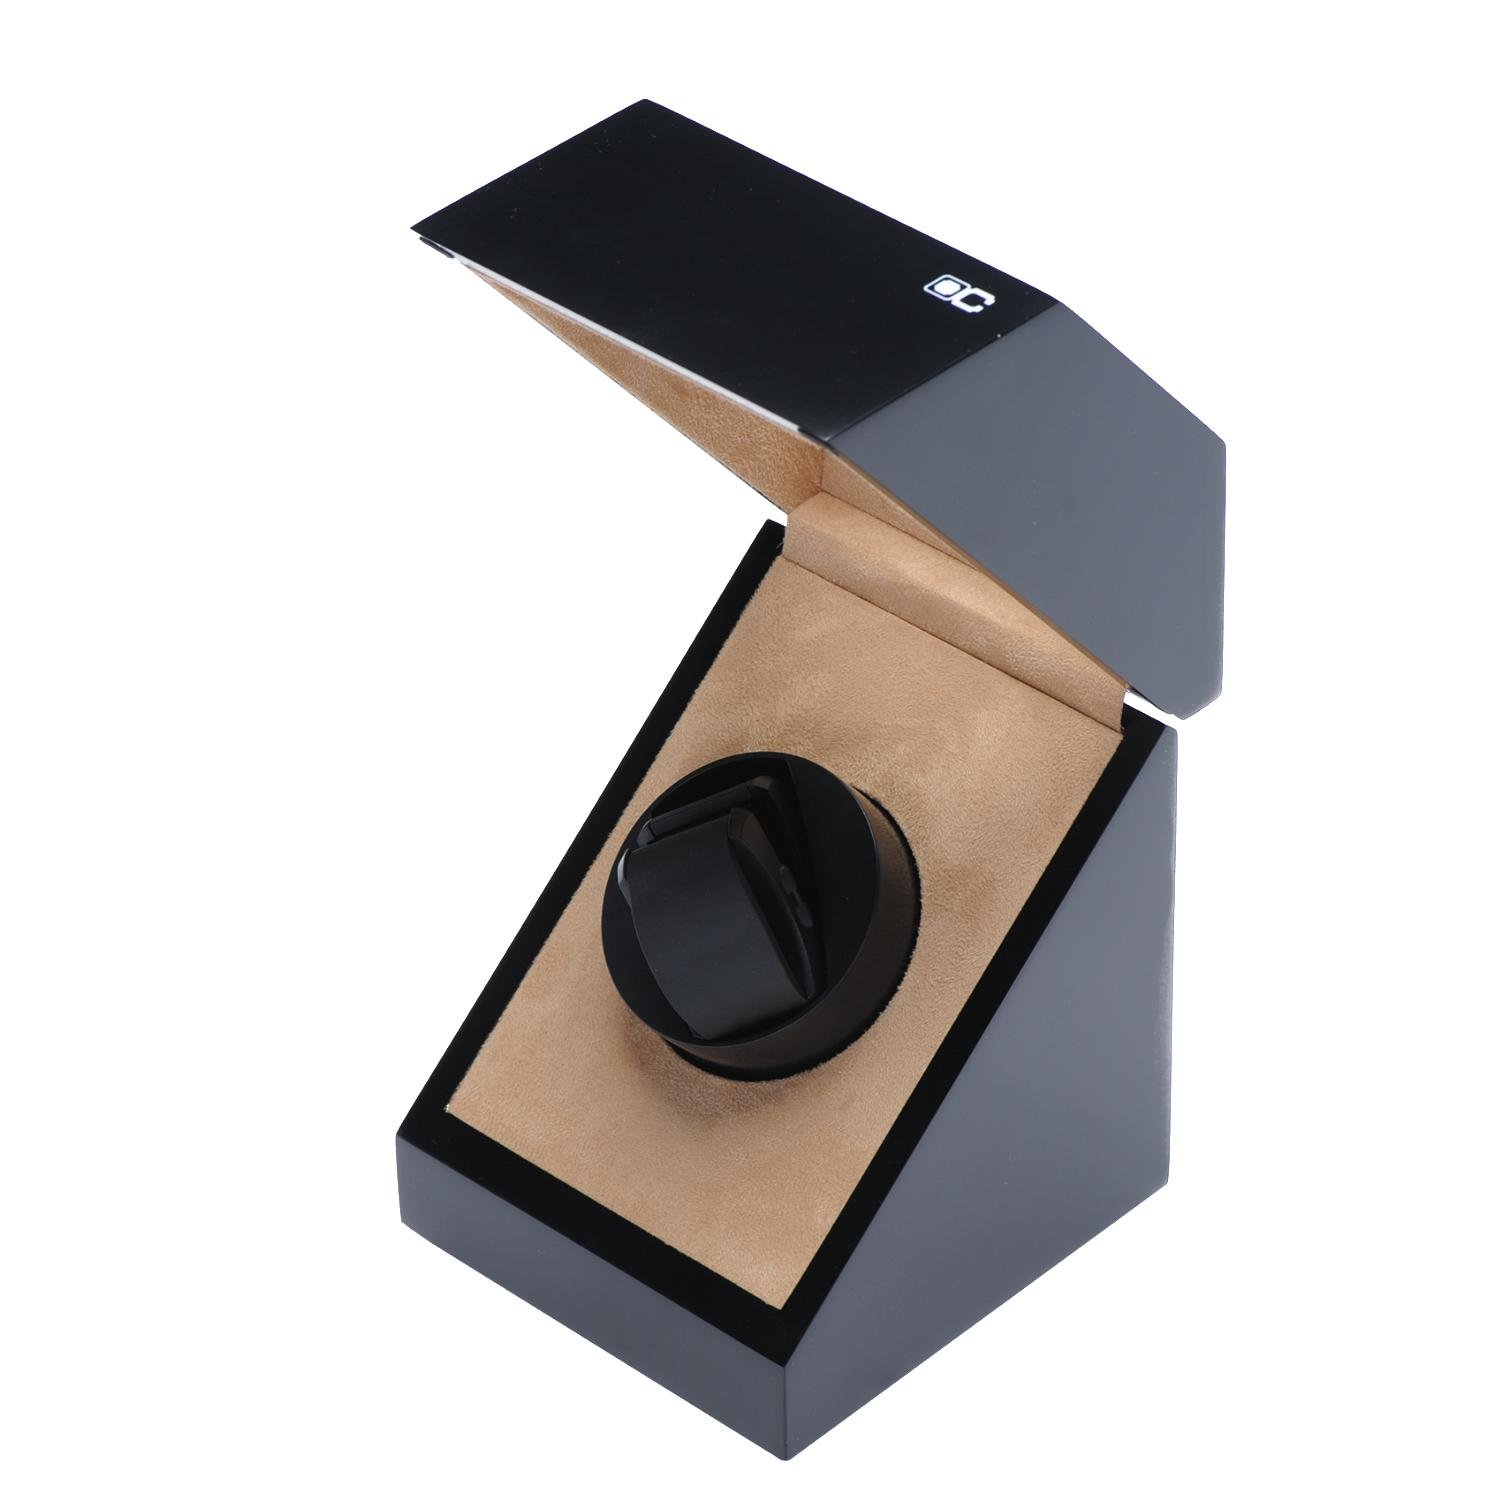 KAIHE-BOX Classic Watch Winders for 1 Watches for automatic Watch Winder Rotator Case Cover Storage(2 color,ww-02131) , # 2 by KAIHE-BOX (Image #1)